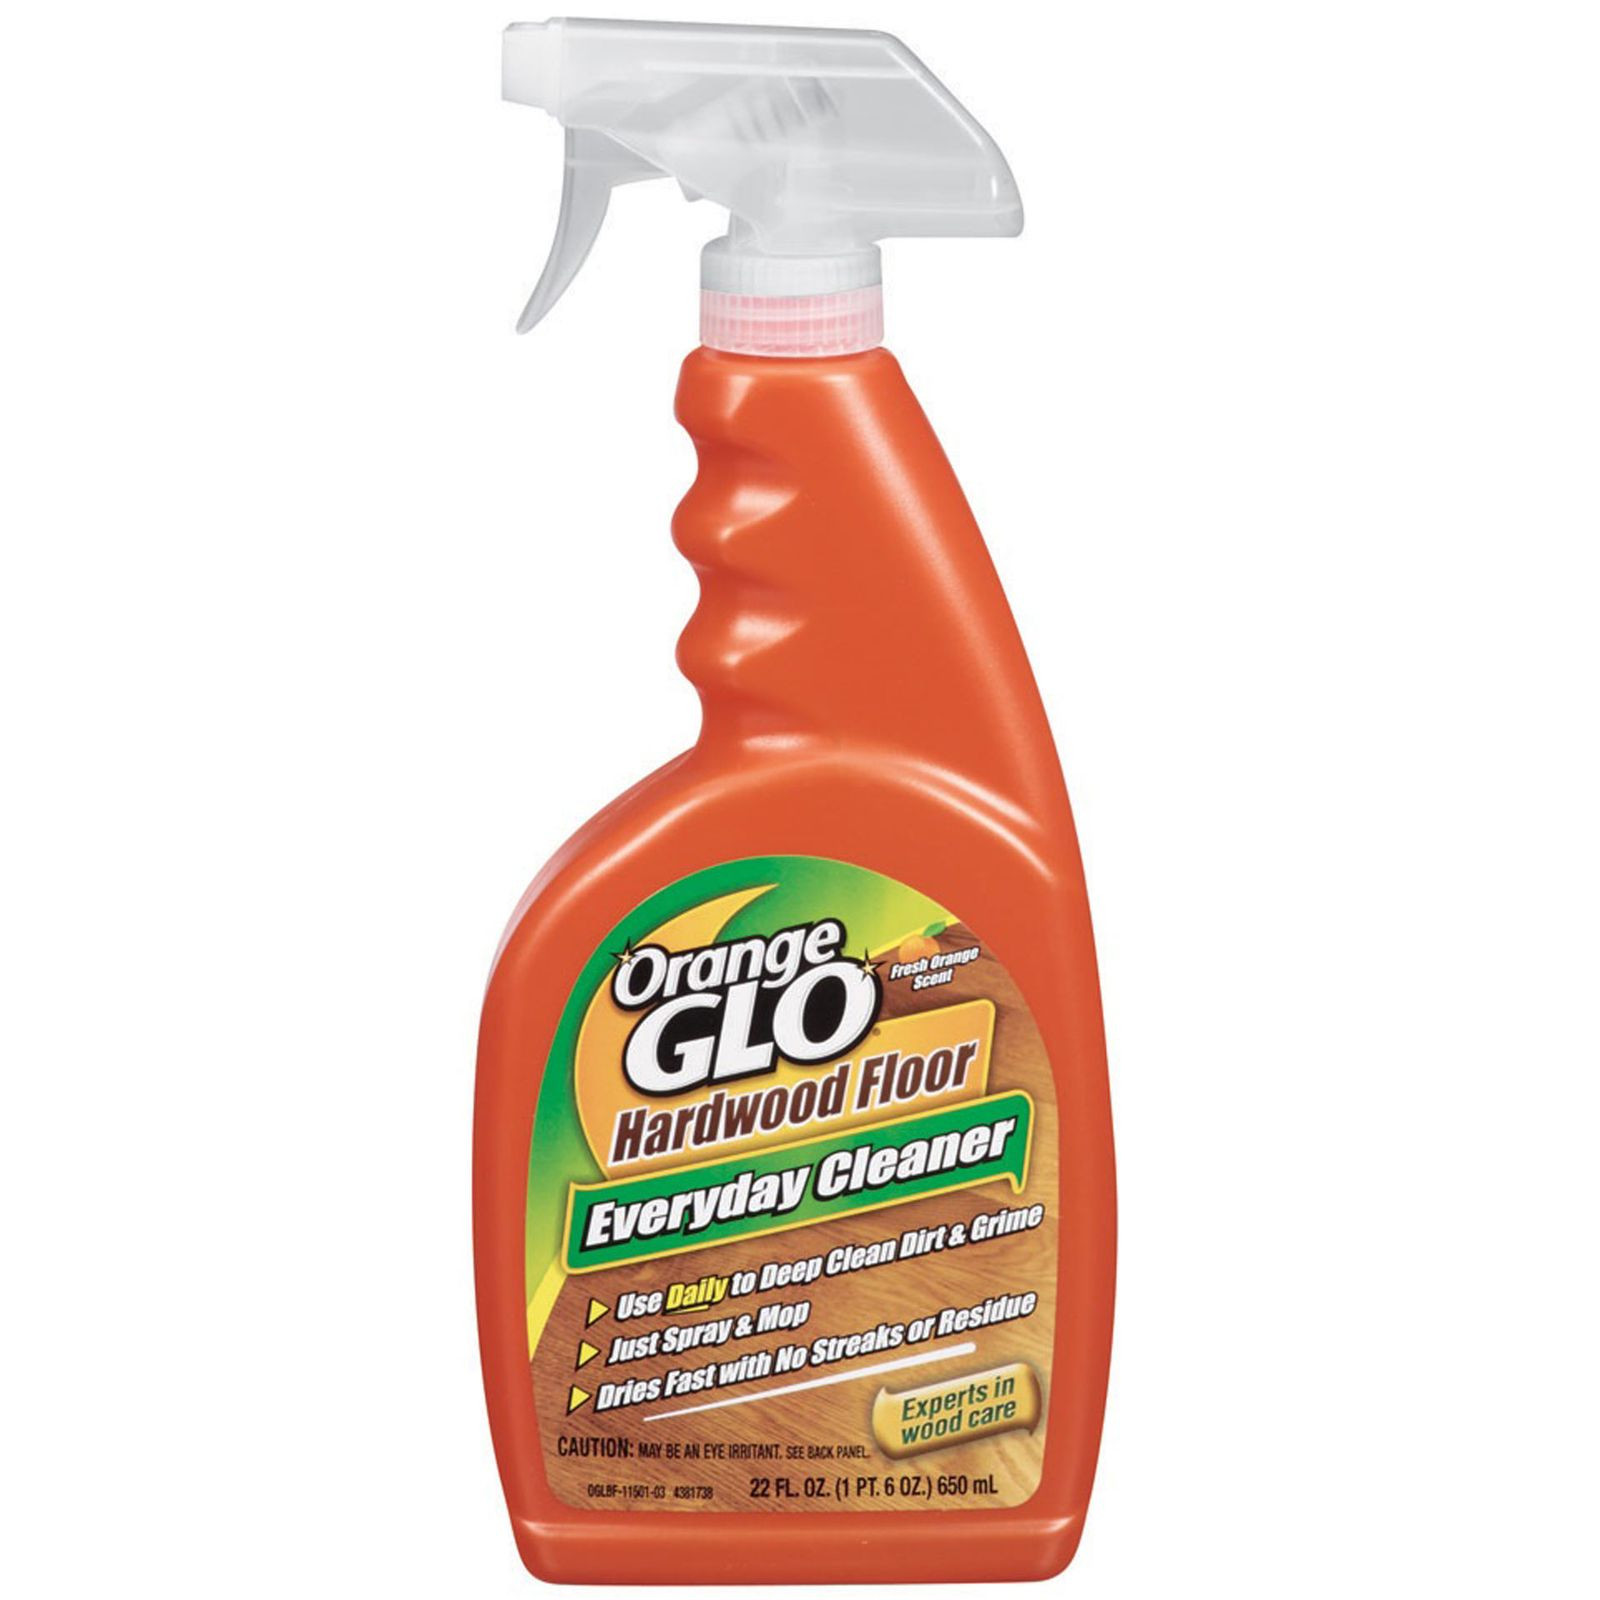 30 Famous Bona Hardwood Floor Cleaner Concentrate 128 Oz 2021 free download bona hardwood floor cleaner concentrate 128 oz of the best product to clean hardwood floors so that those for orange glo hardwood floor everyday cleaner review